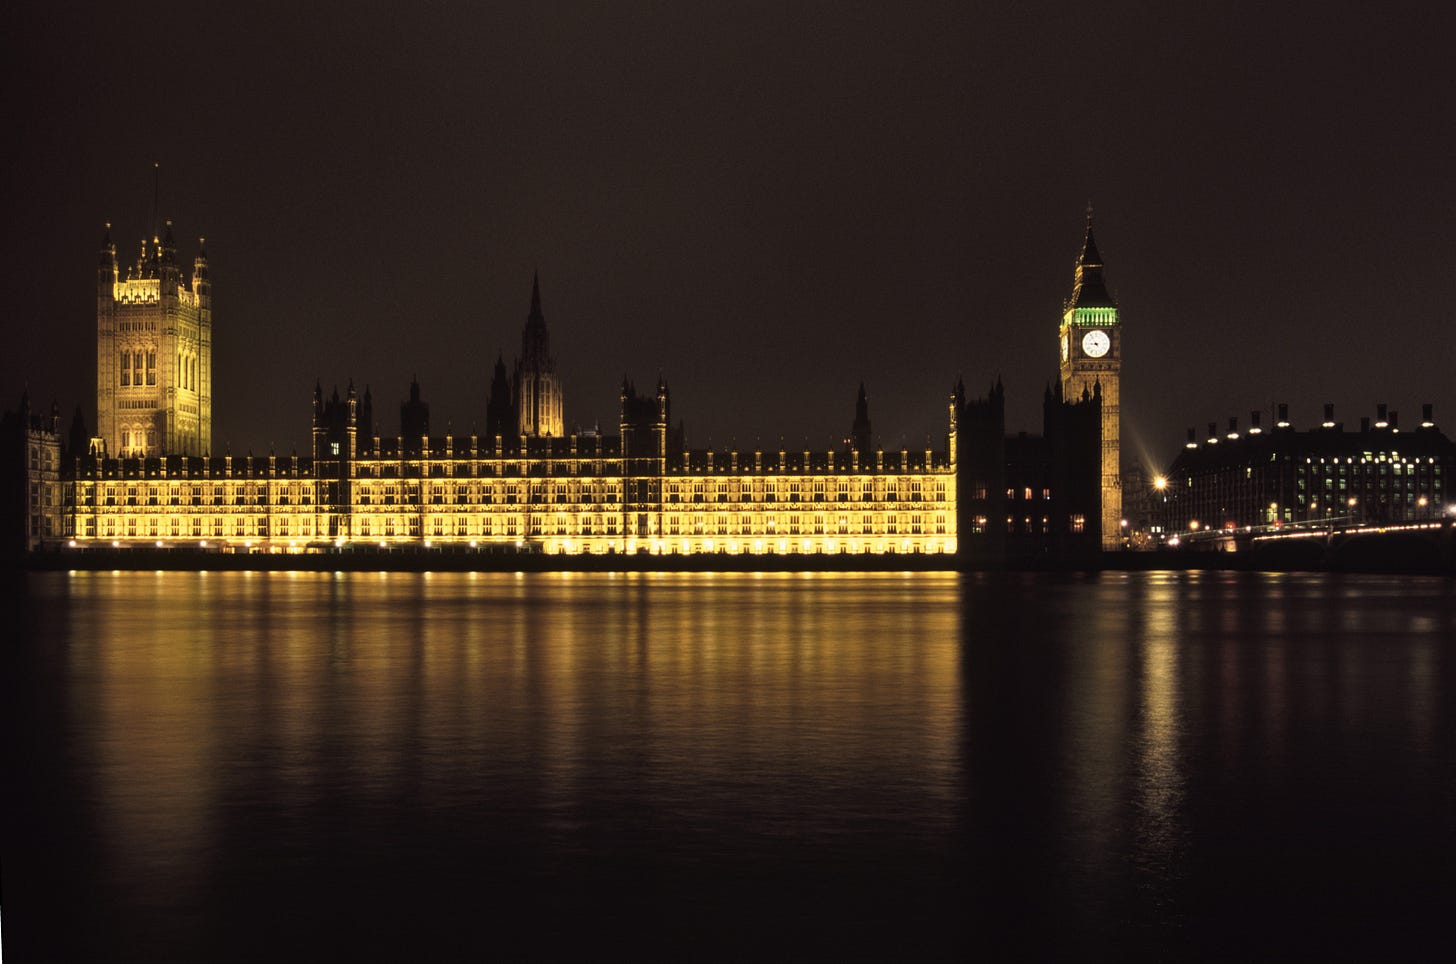 Palace of Westminster at night - Belgravia Books Collective